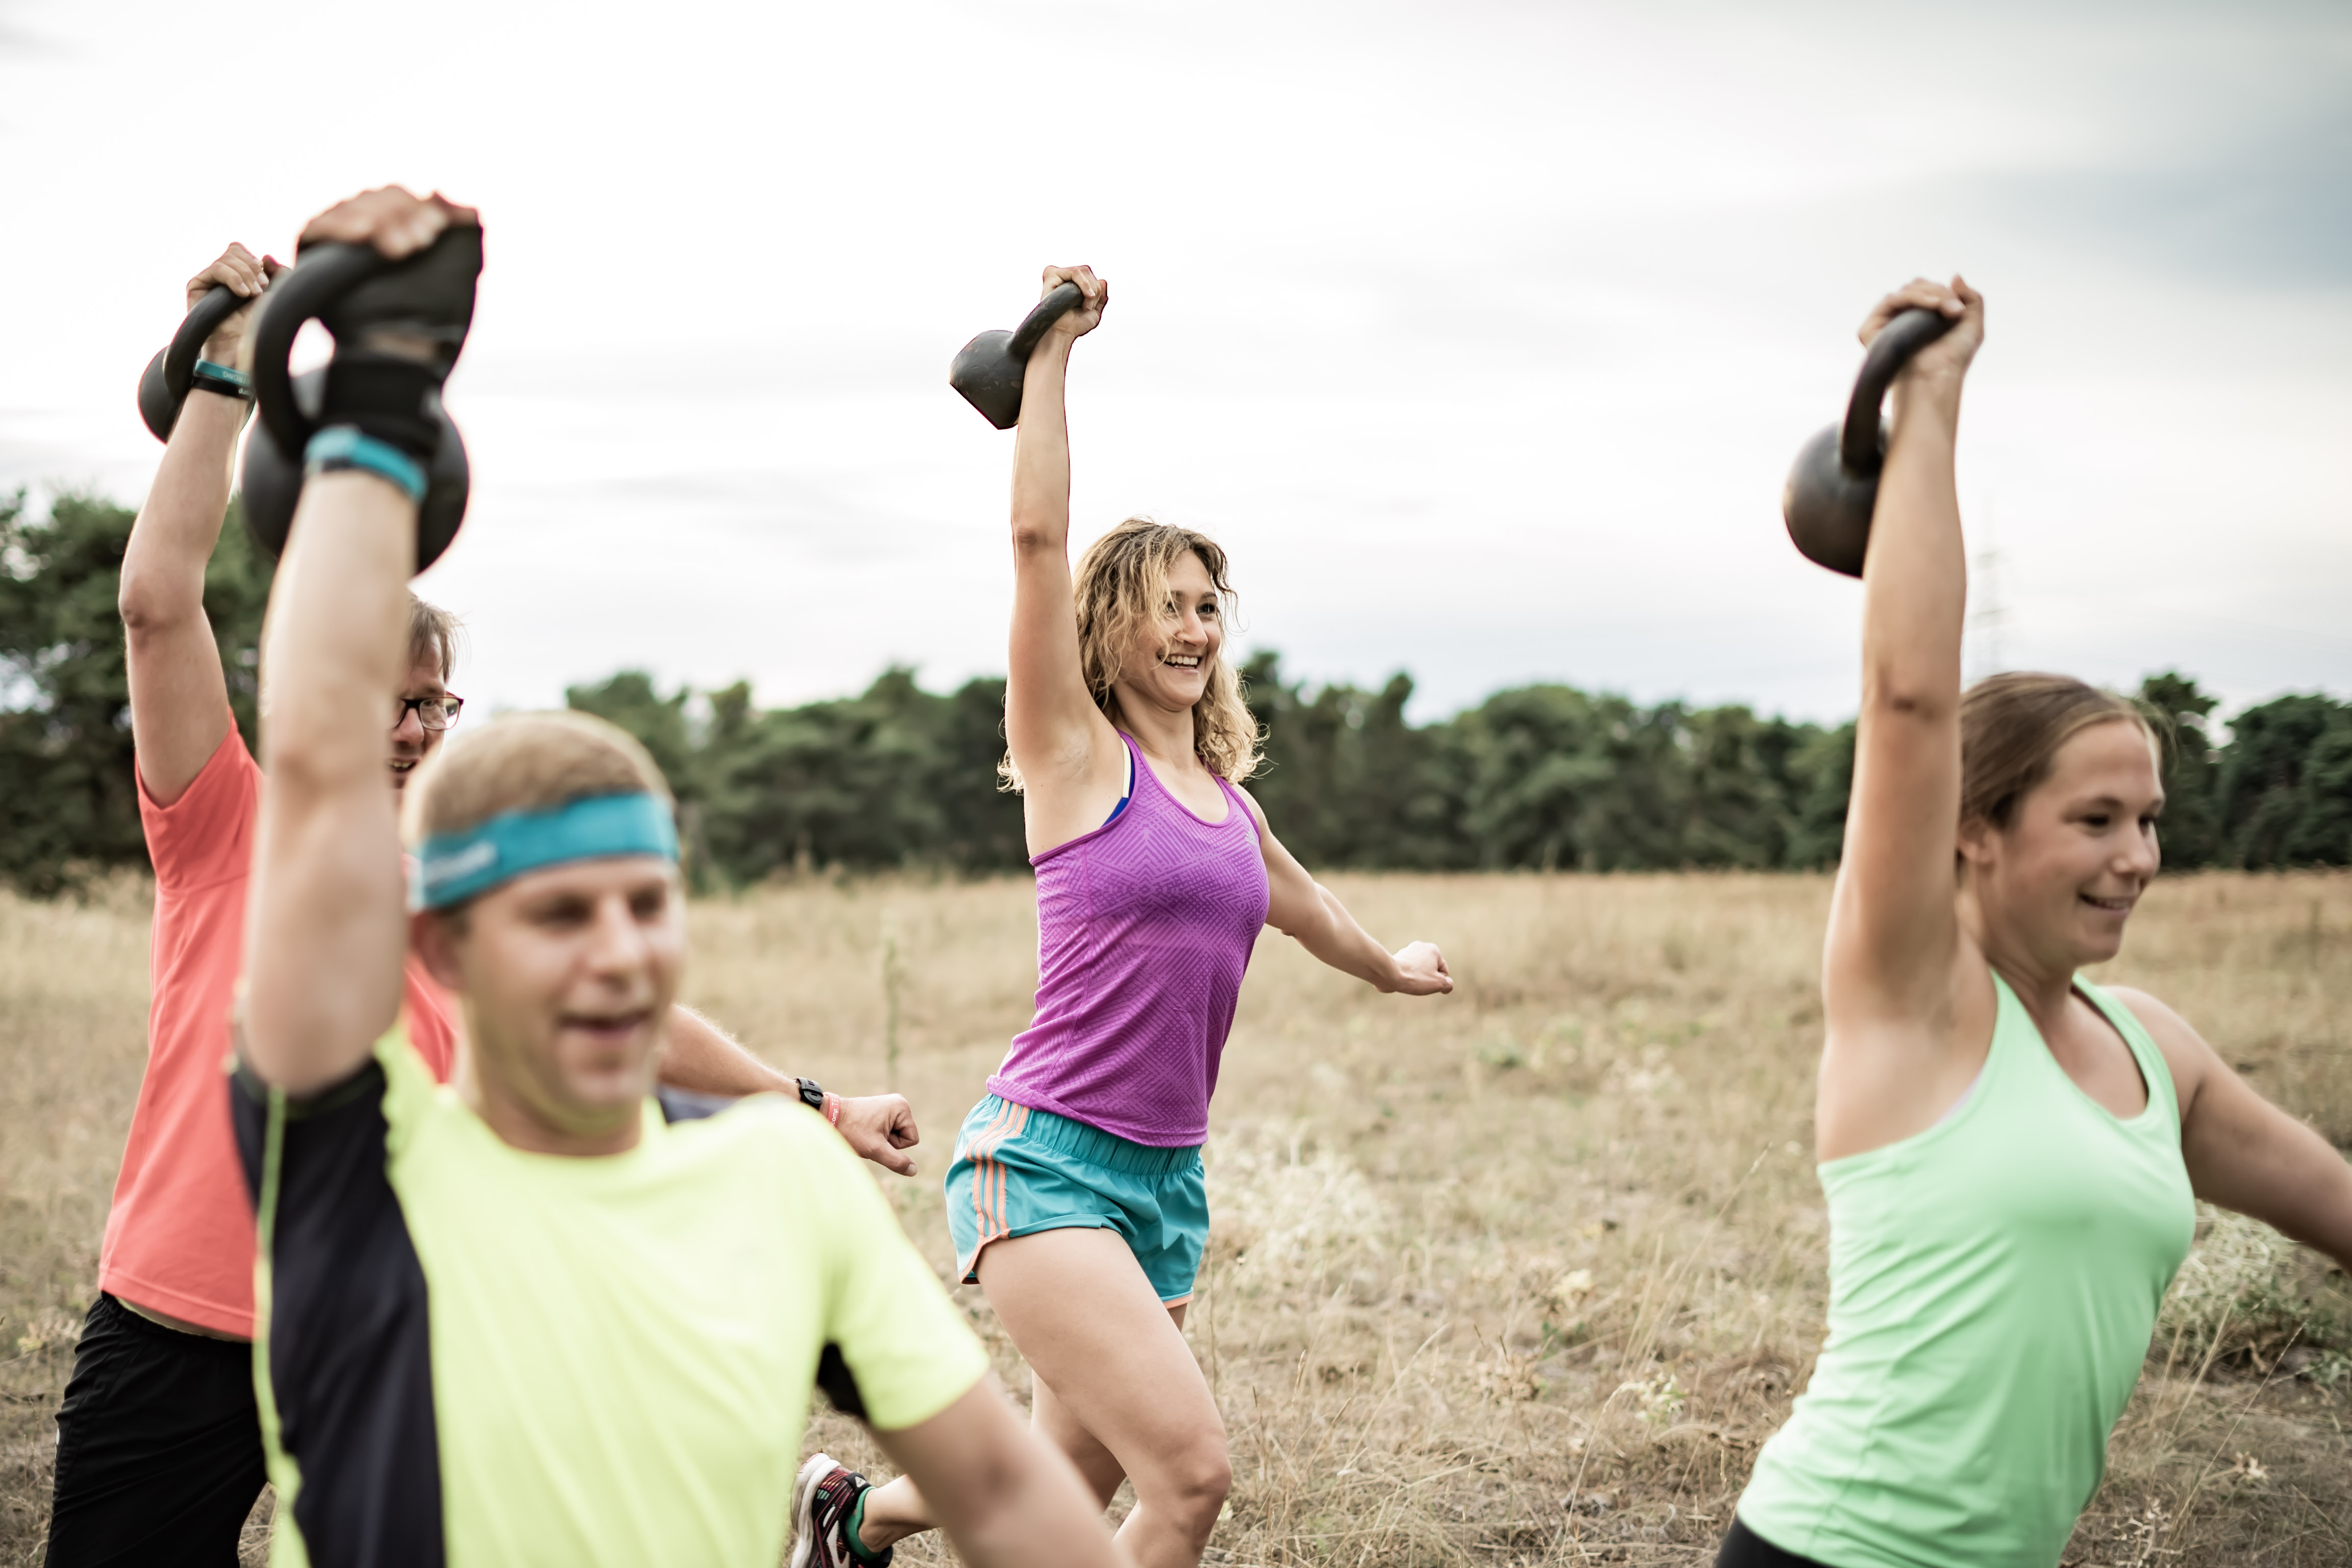 outdoor bootcamp training in leverkusen